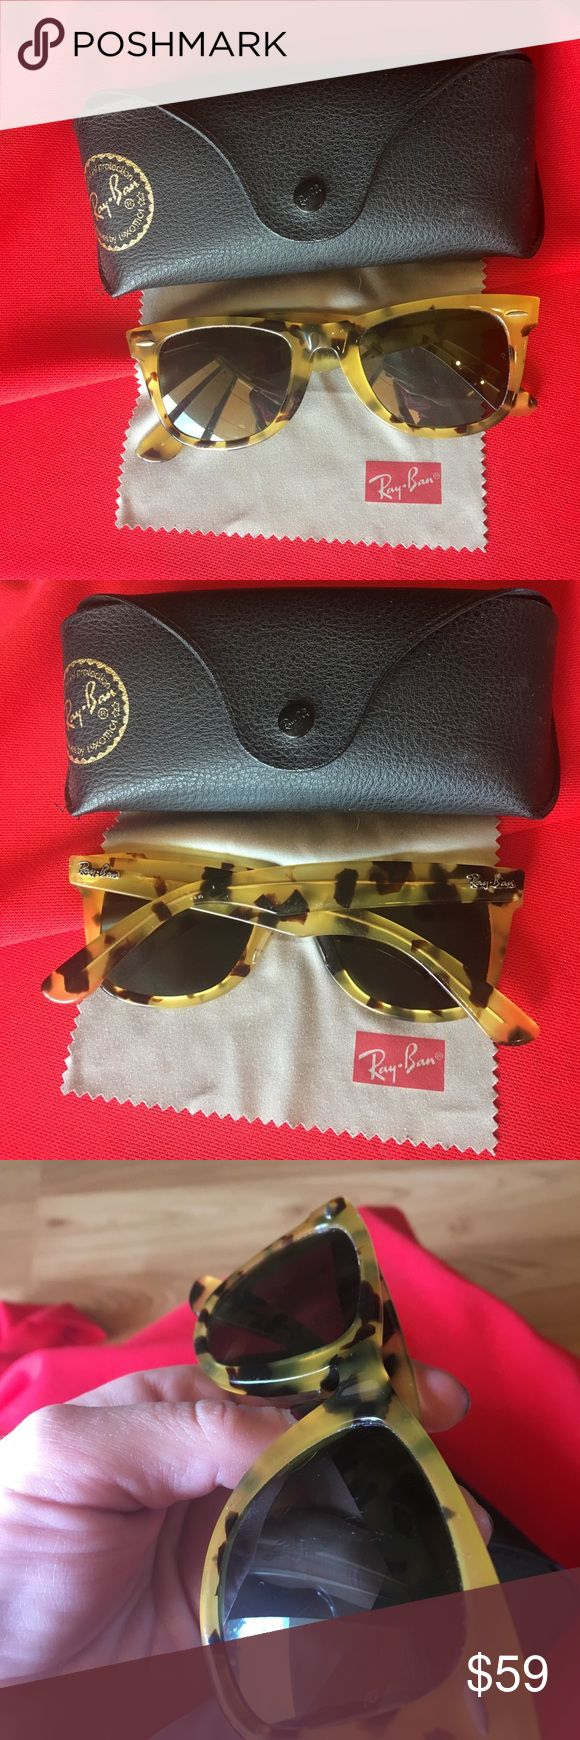 Women's Ray Ban Sunglasses ☀️☀️ Women's wayfarer Ray Ban Sunglasses. Golden Brown tortoise shell frames. Has some light scratching on lenses and frames. Includes case and soft cloth Ray Ban Accessories Sunglasses